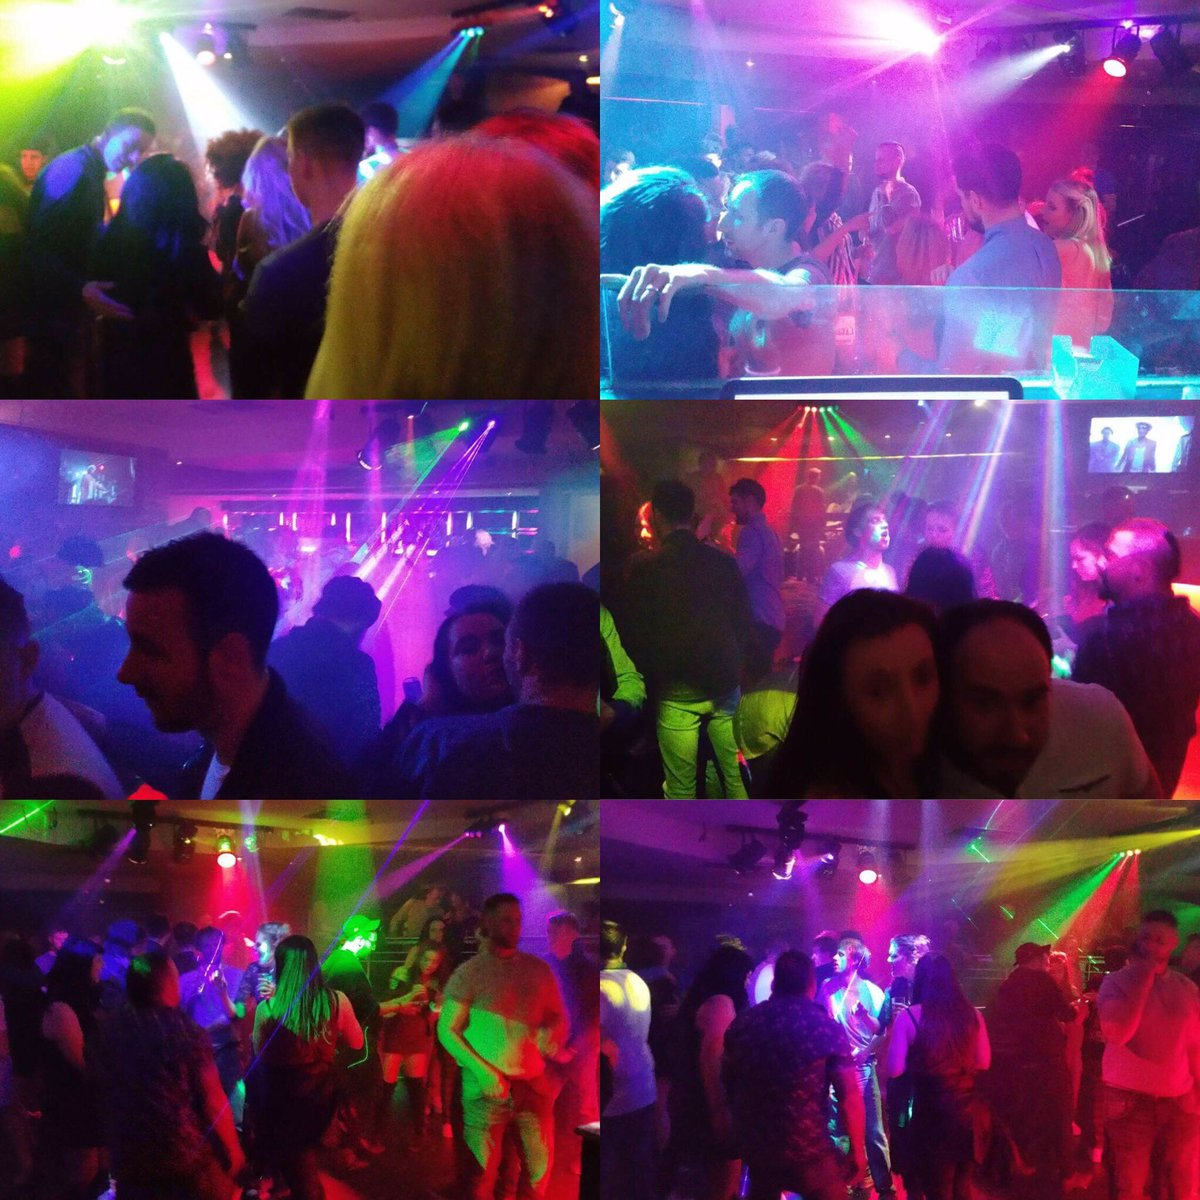 A few pics from the weekend! Bring on the bank holiday!! Details will follow shortly of what&#39;s on! #music #party #dance #beer #outout #dj<br>http://pic.twitter.com/GbFjvUOd8o